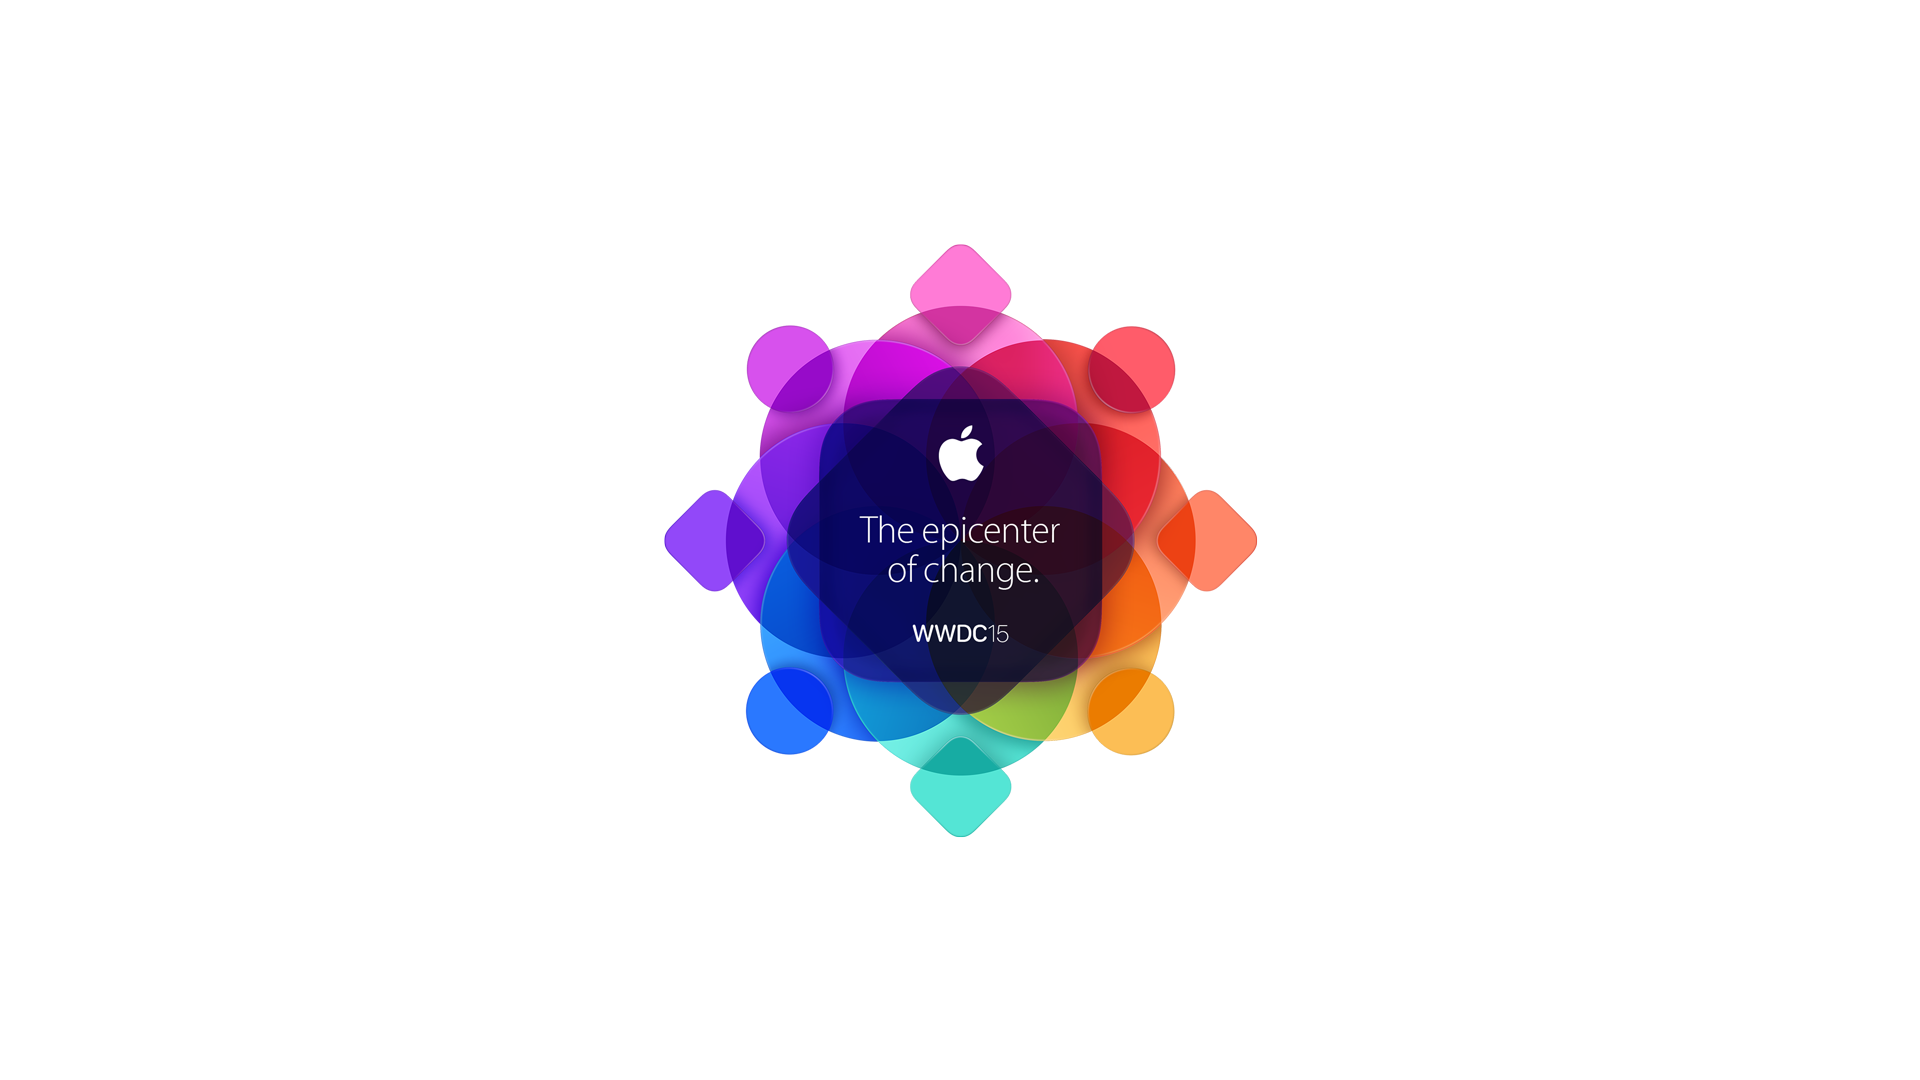 WWDC 2015 wallpapers: the epicenter of change